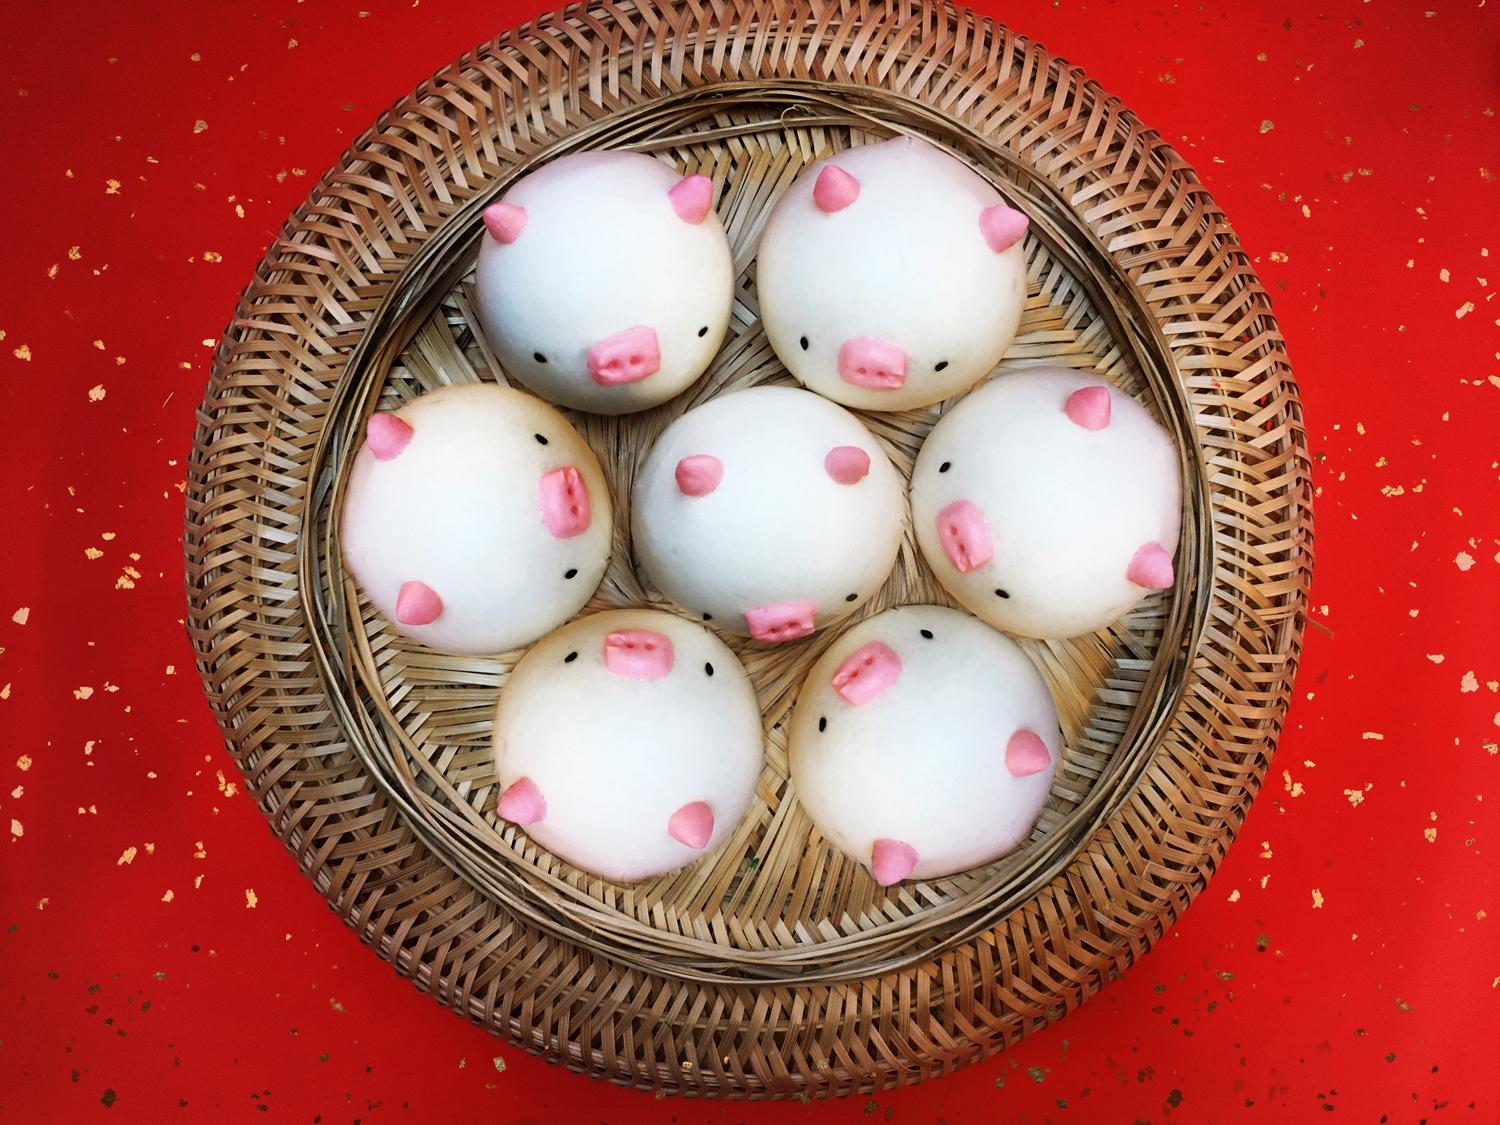 Year of the Pig is this Chinese New Year, and London's restaurants celebrated with cutesy pig bao buns